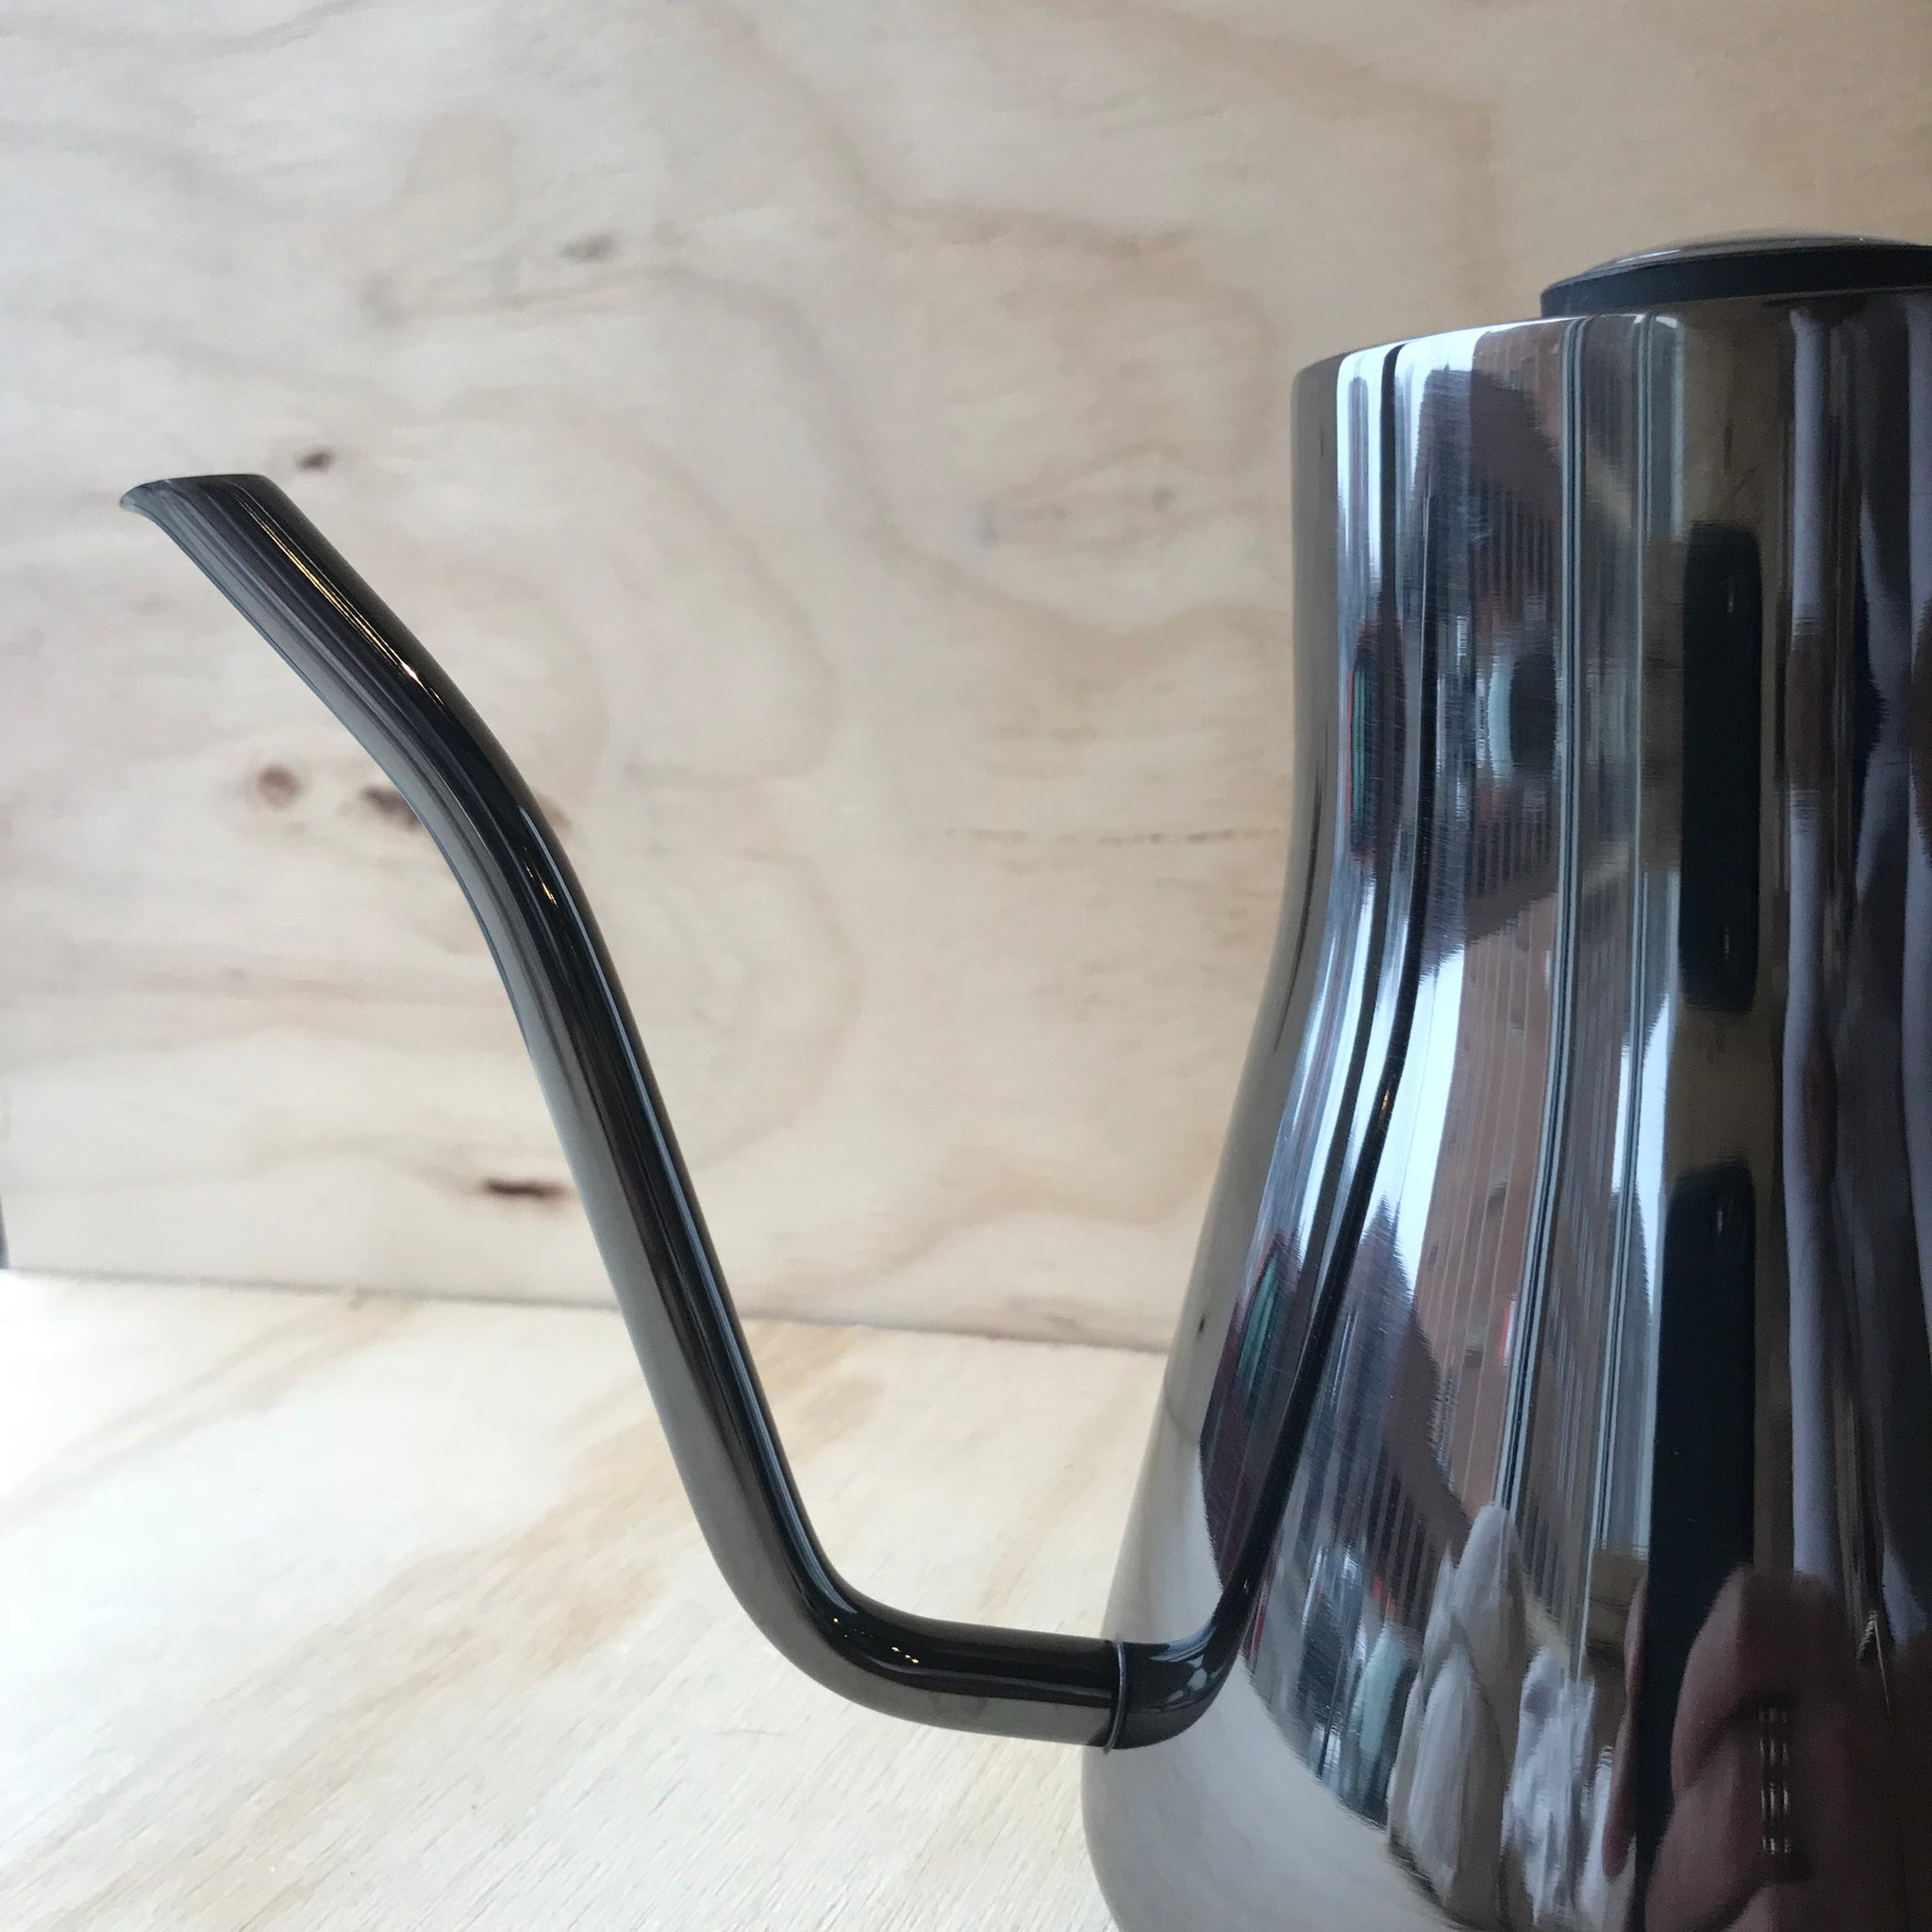 Limited Edition Stagg Graphite Kettle with Thermometer by Fellow - Upstate MN